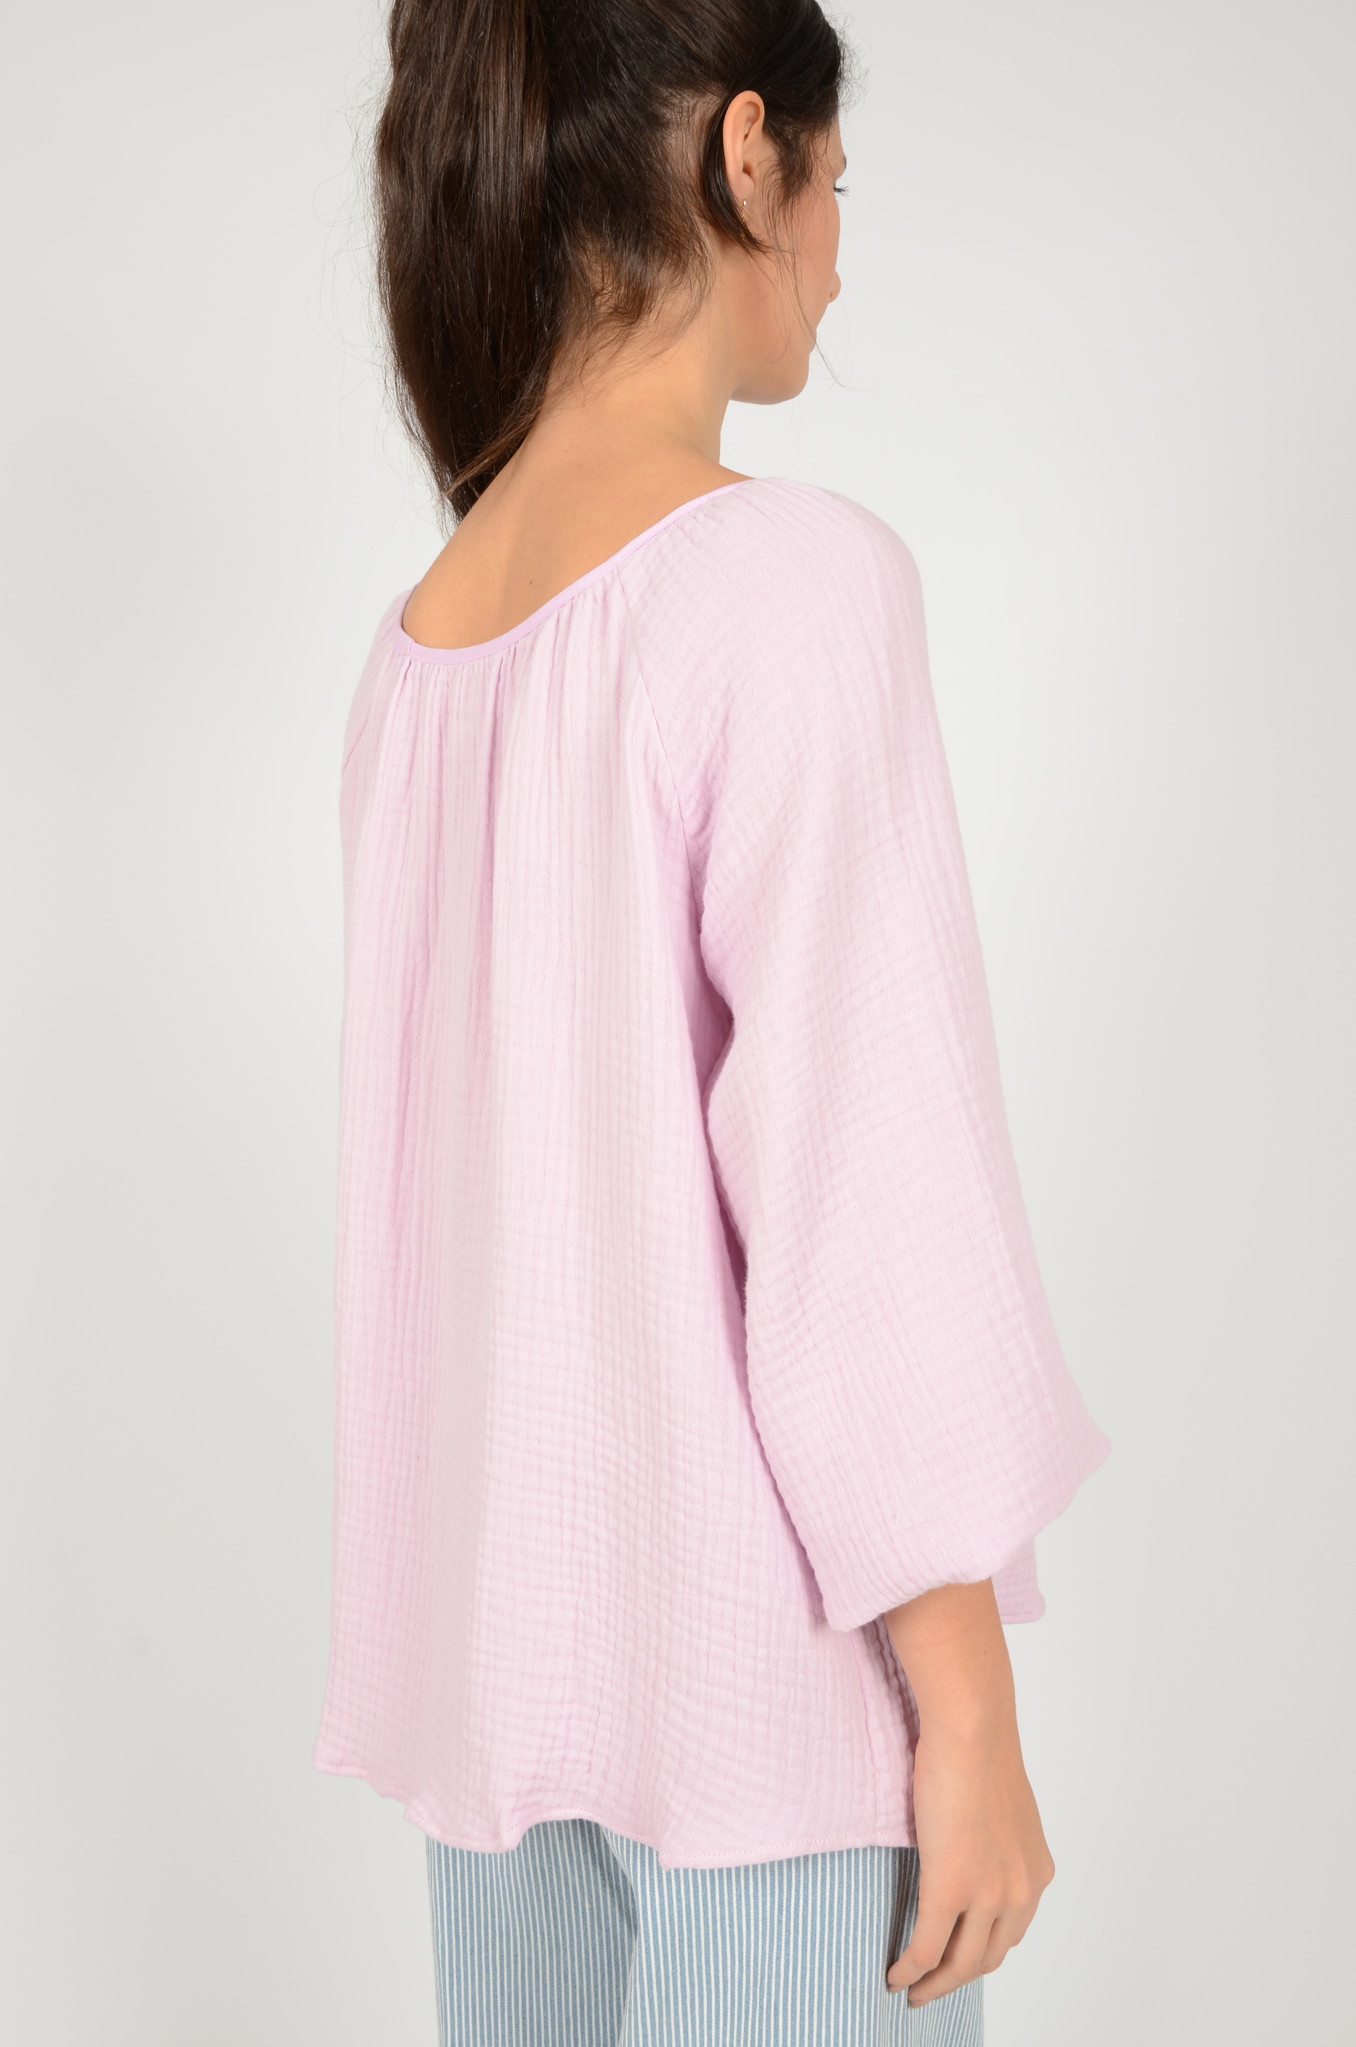 MORNING BLOUSE IN LILAC-4